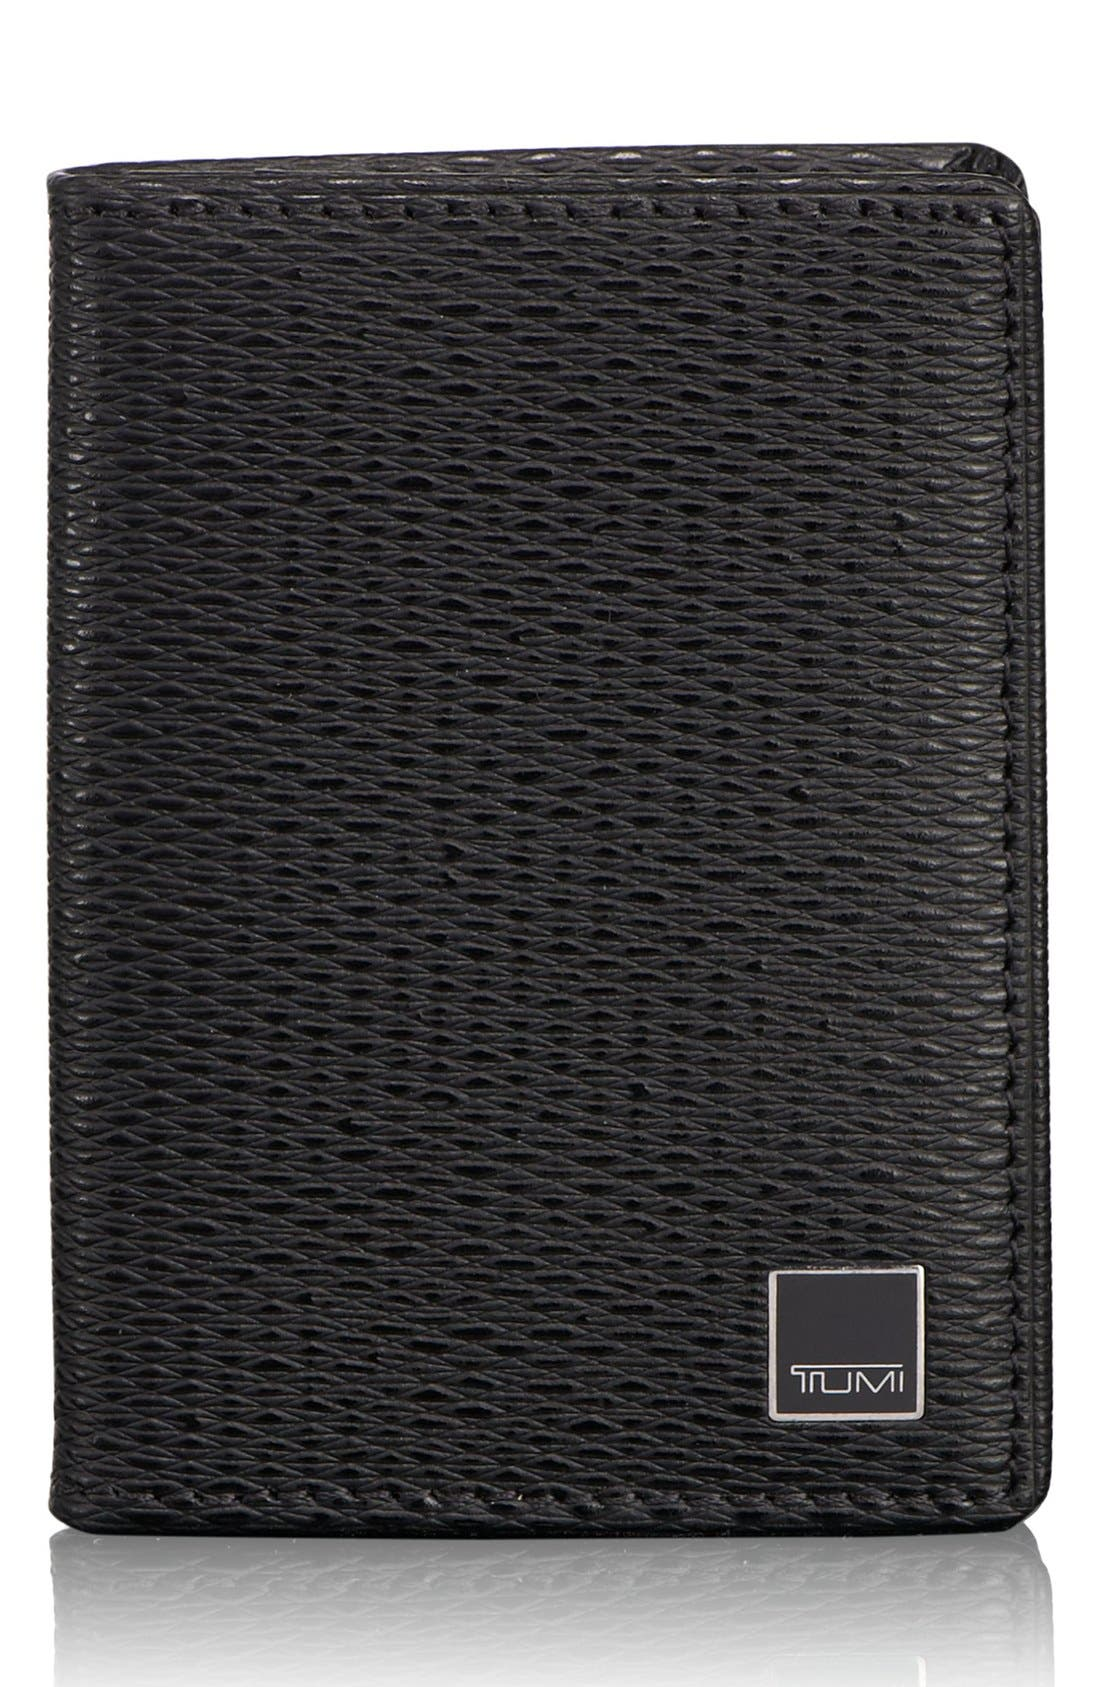 Alternate Image 1 Selected - Tumi 'Monaco' Gusseted Leather Card Case